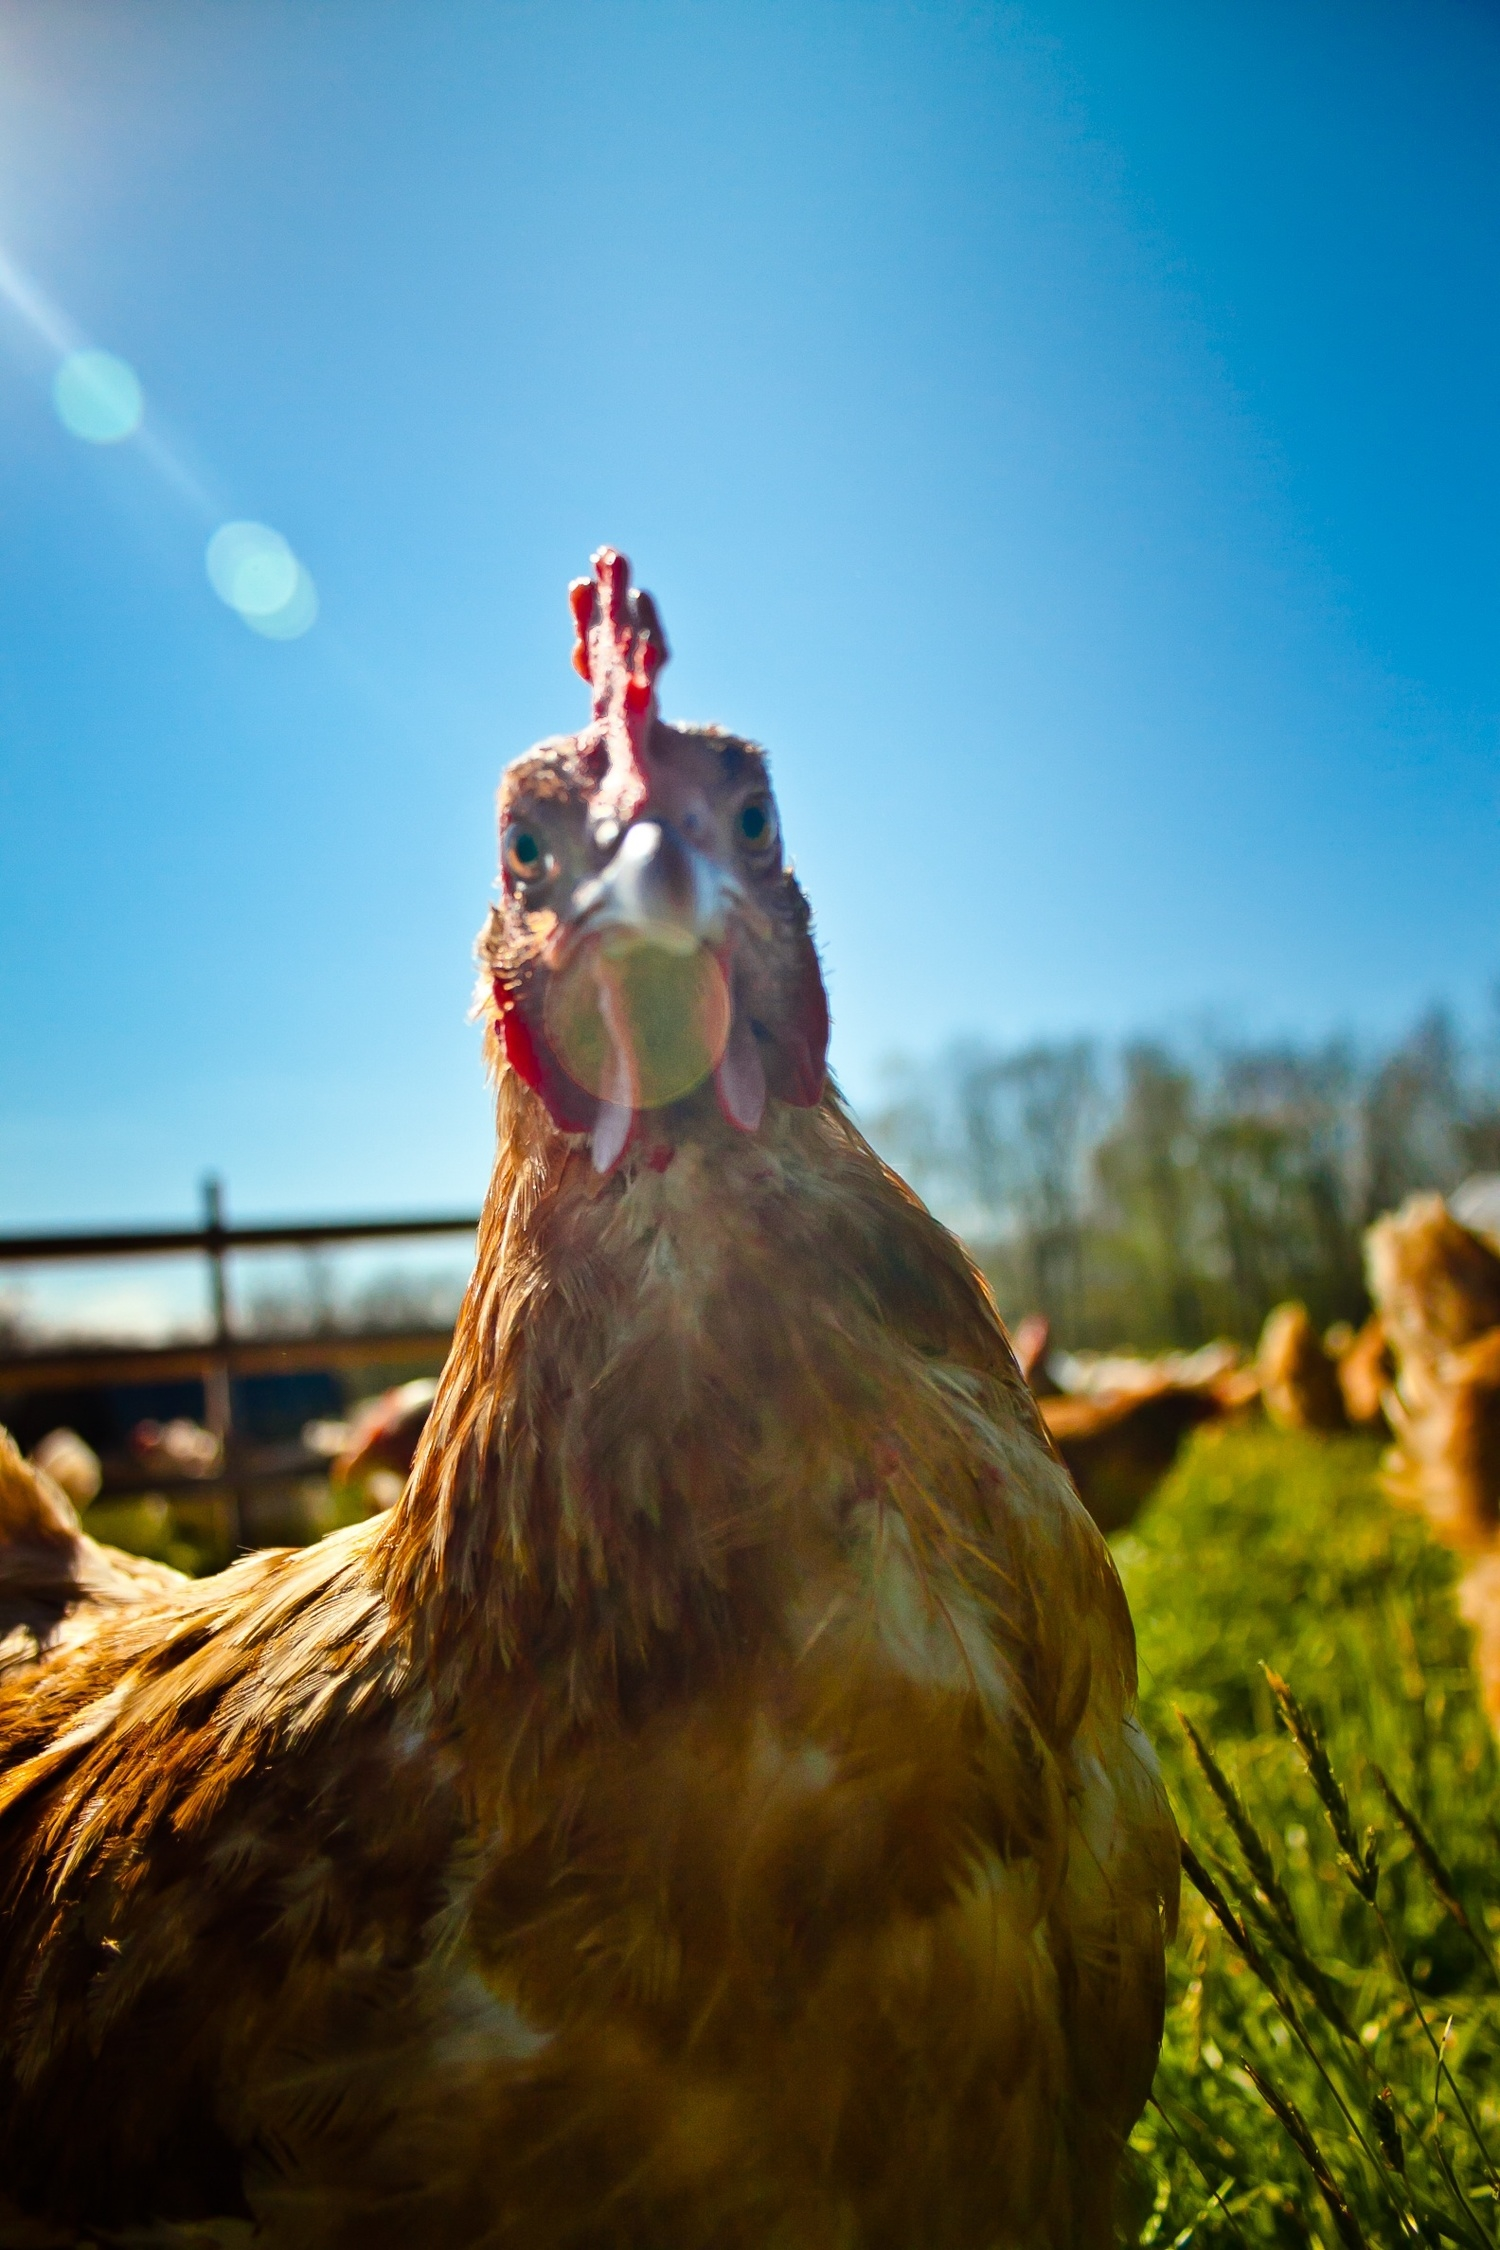 hen in light.jpg